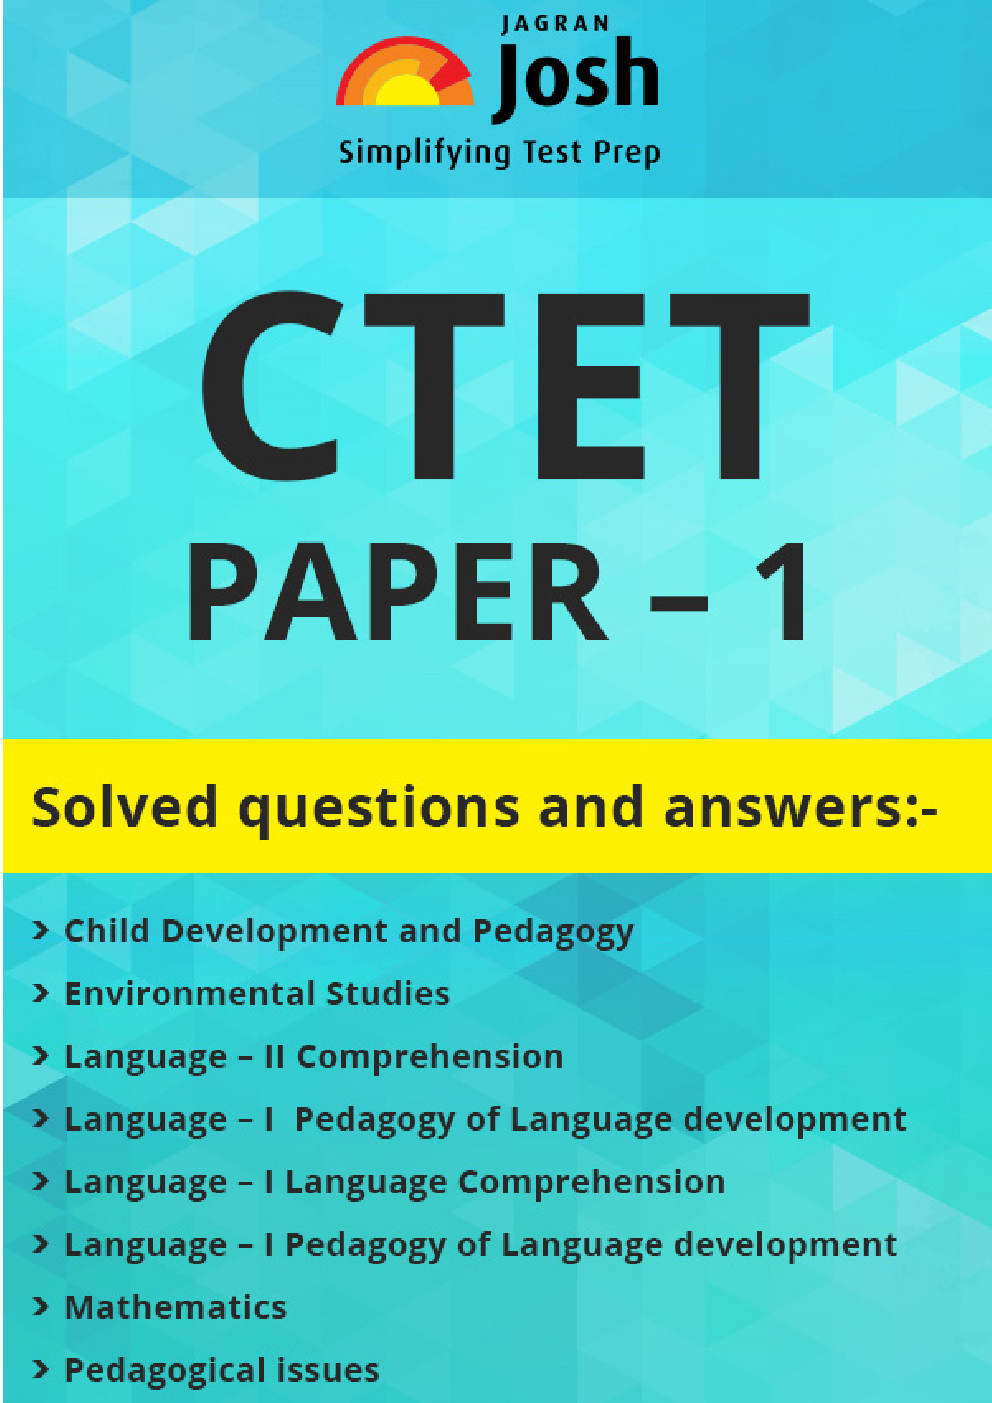 CTET Paper-1 Solved Questions and Answers - Page 1